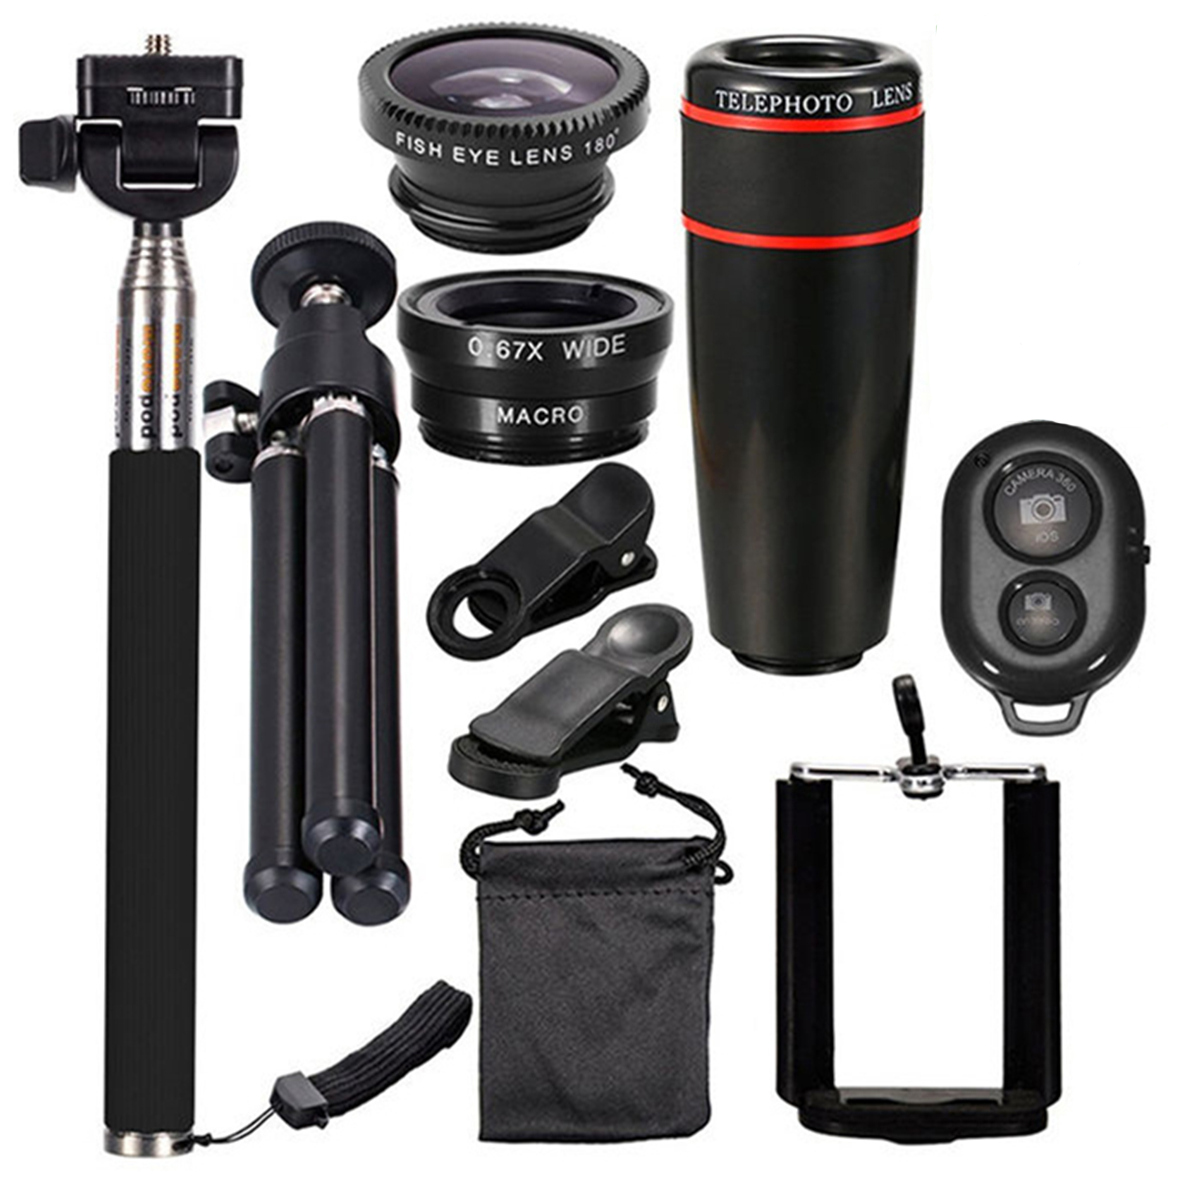 10-in-1 Universal Smartphone Camera Lens Fish Eye Lens with Clip Optical Telescope Kit Mobile selfie stick Bluetooth Set